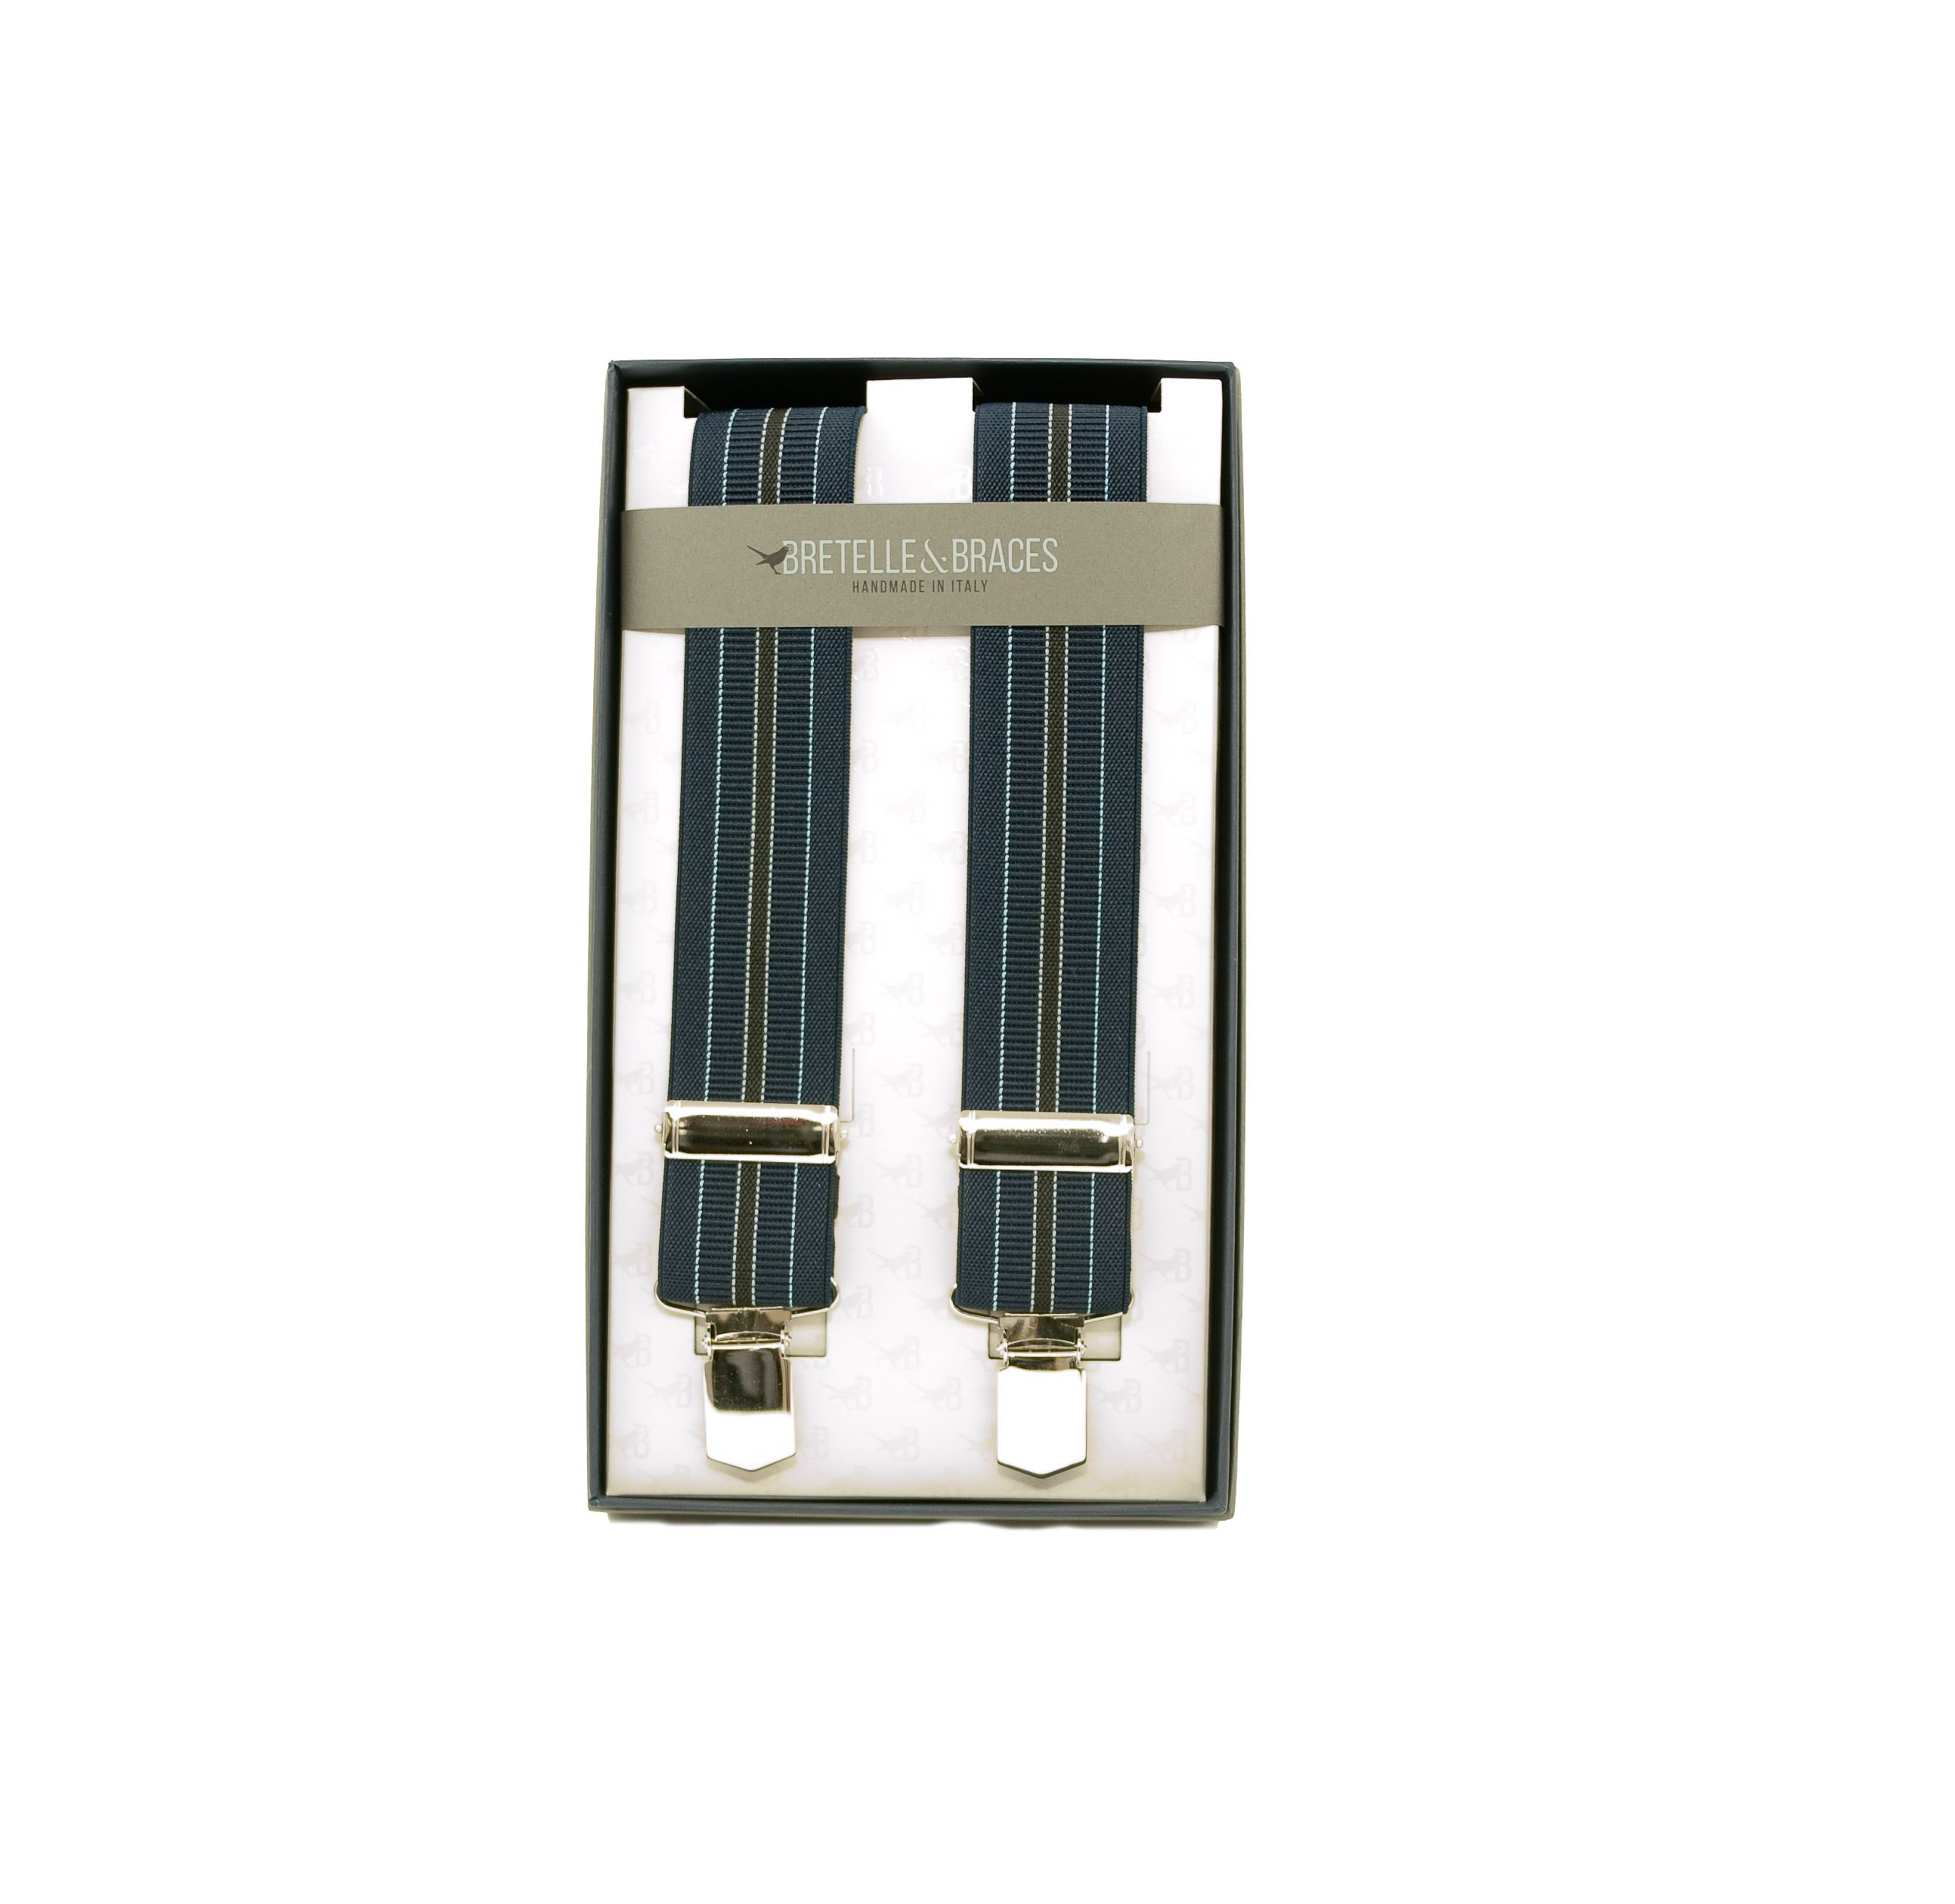 Picture of Tape braces with blue and grey stripes